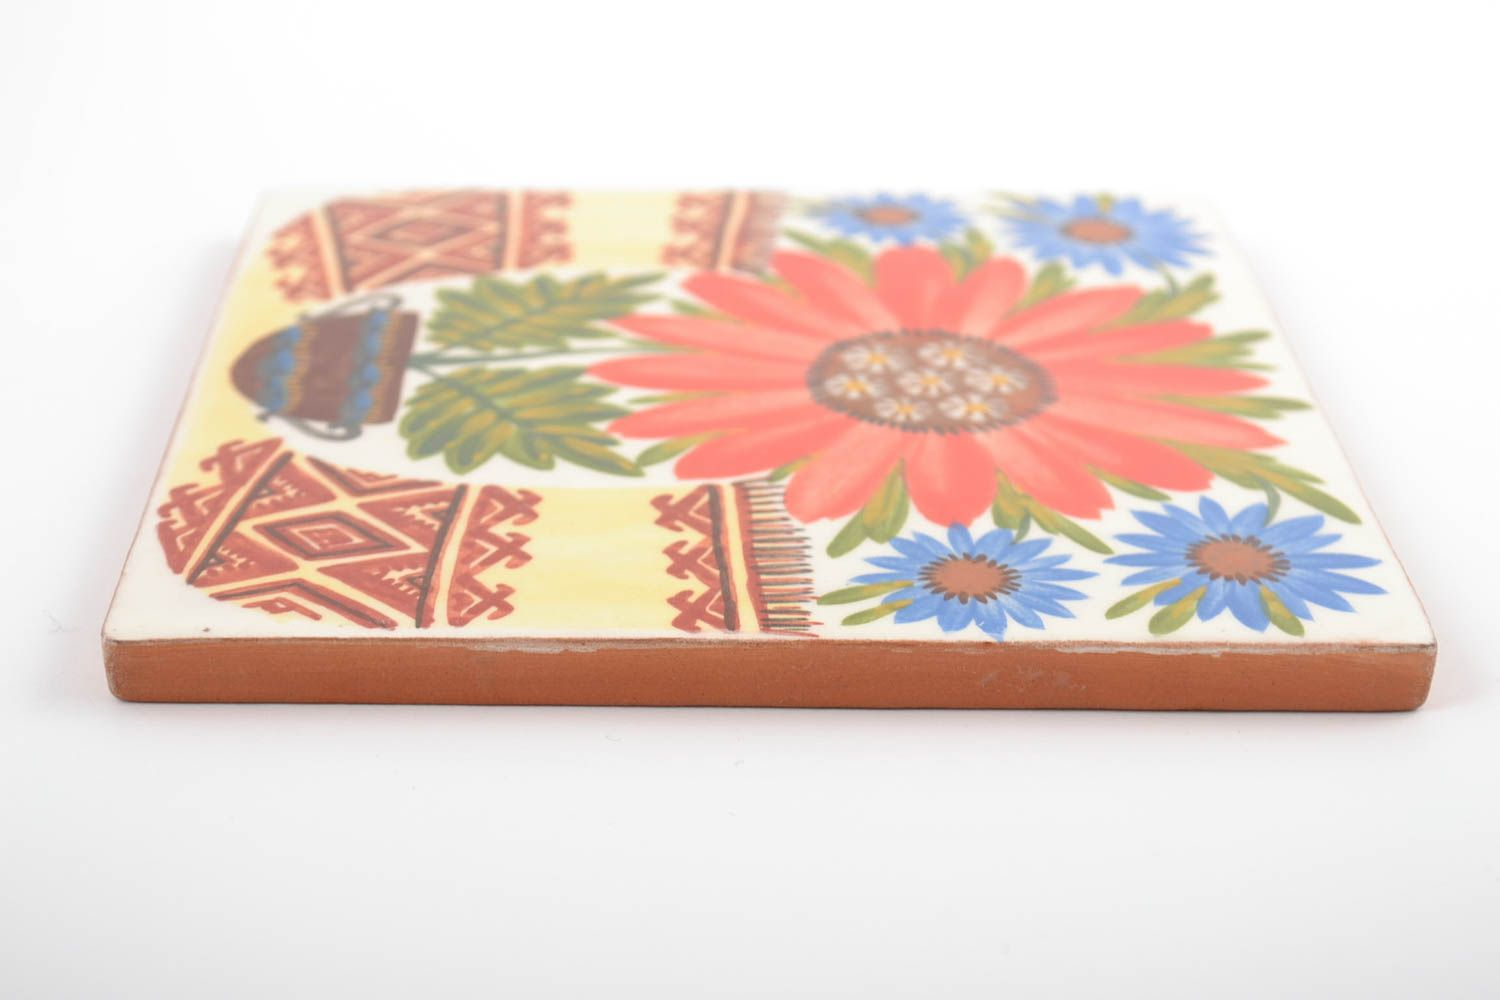 decorative handmade tiles Square handmade wall tile with flowers made of clay colorful interior wall panel - MADEheart.com